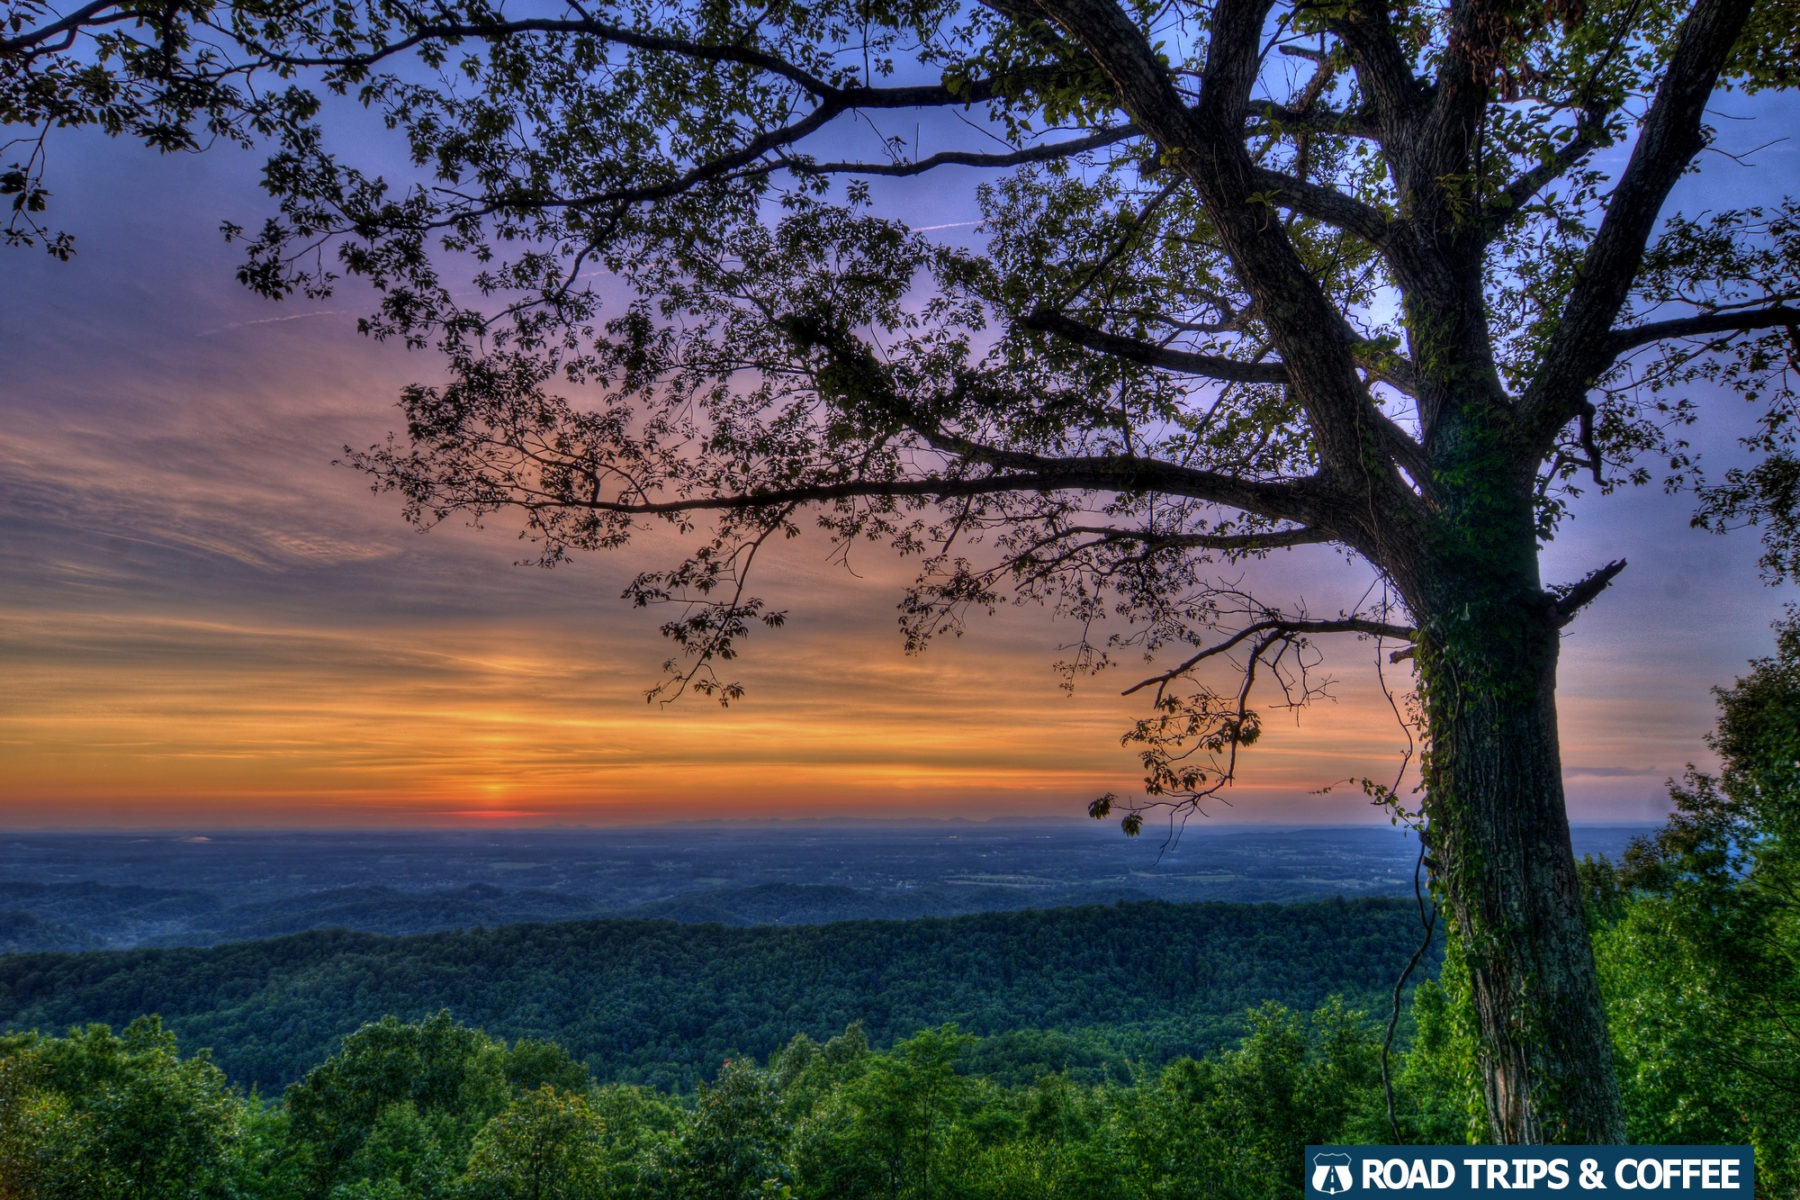 A warm sunset across the low-lying landscape beyond the Foothills Parkway in the Great Smoky Mountains National Park